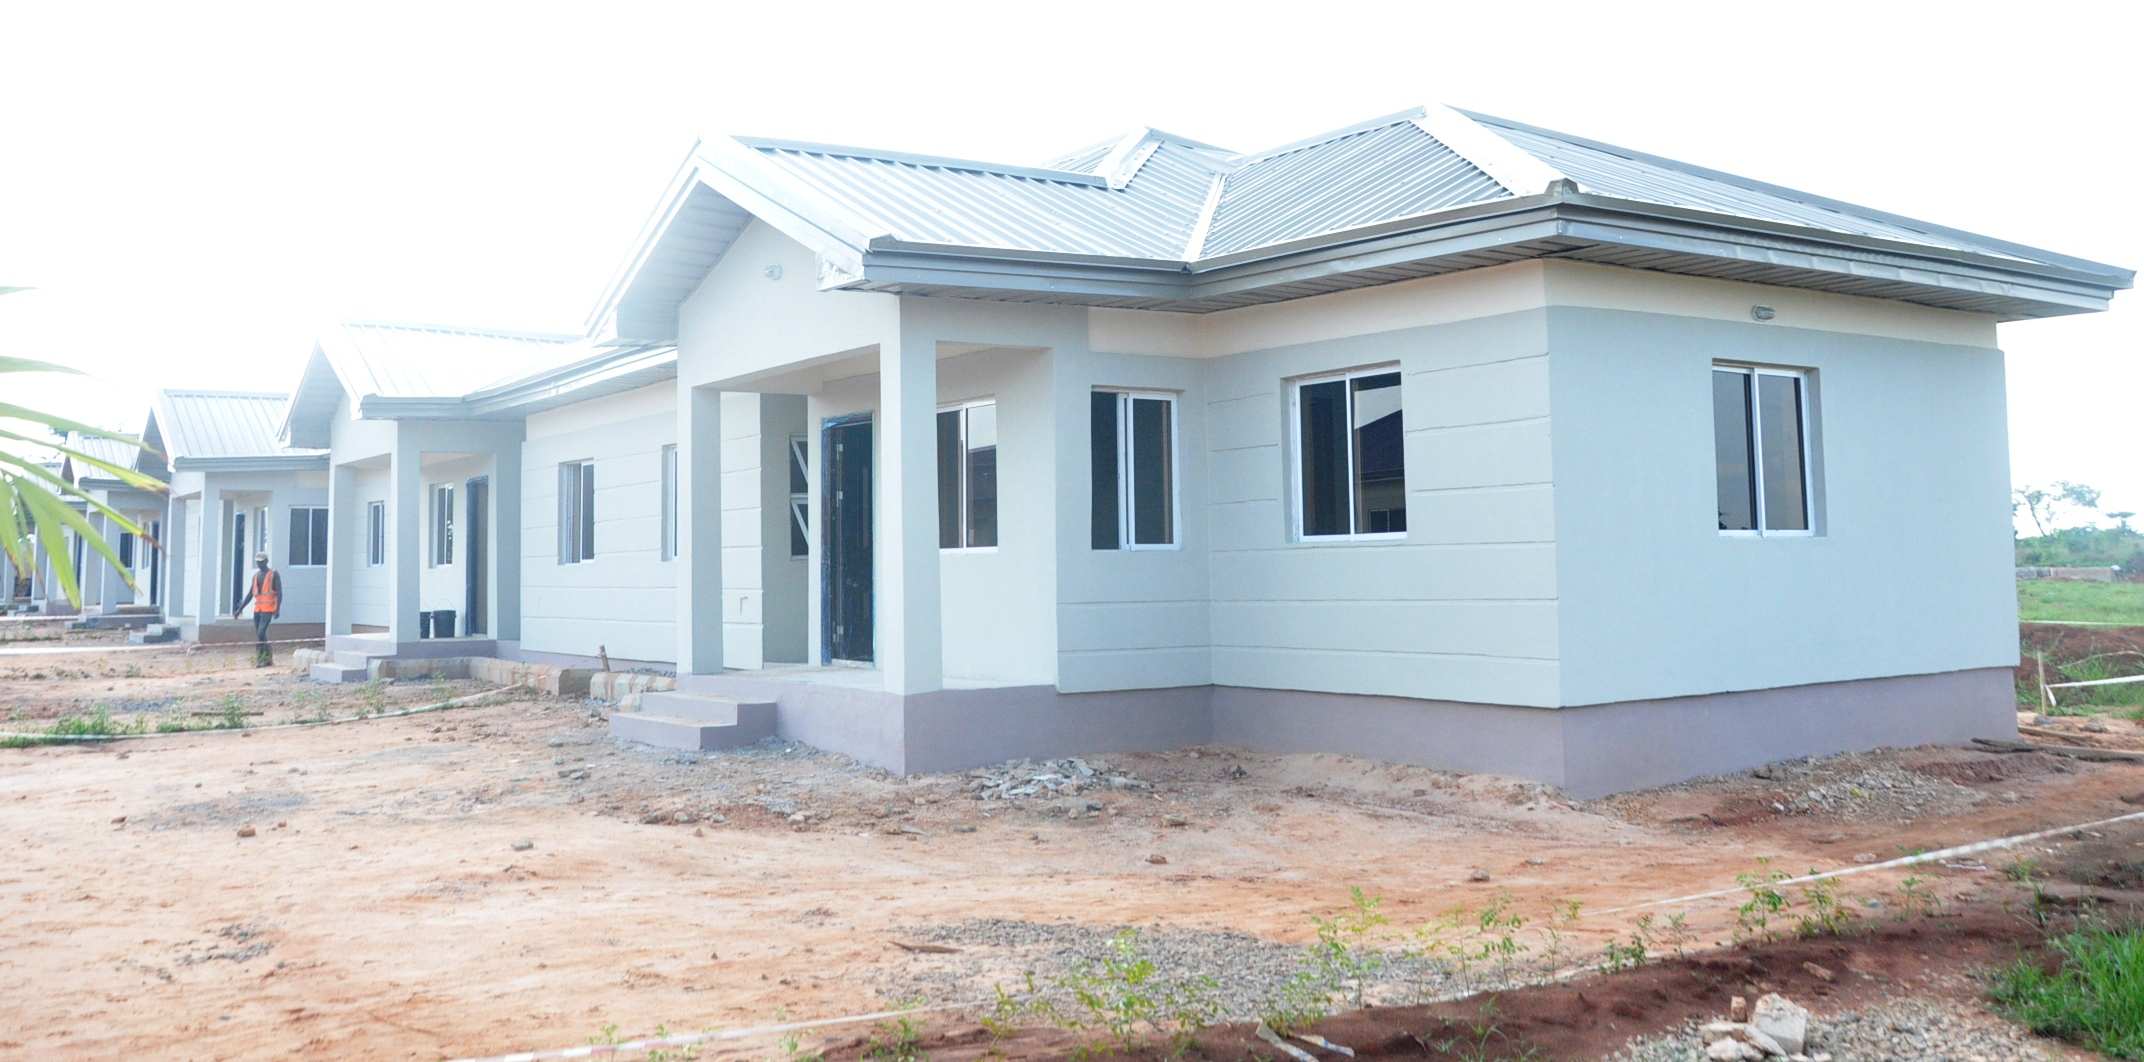 Emotan Gardens: Affordable housing packages excite Edo residents at EdoFEST, Igue Festival